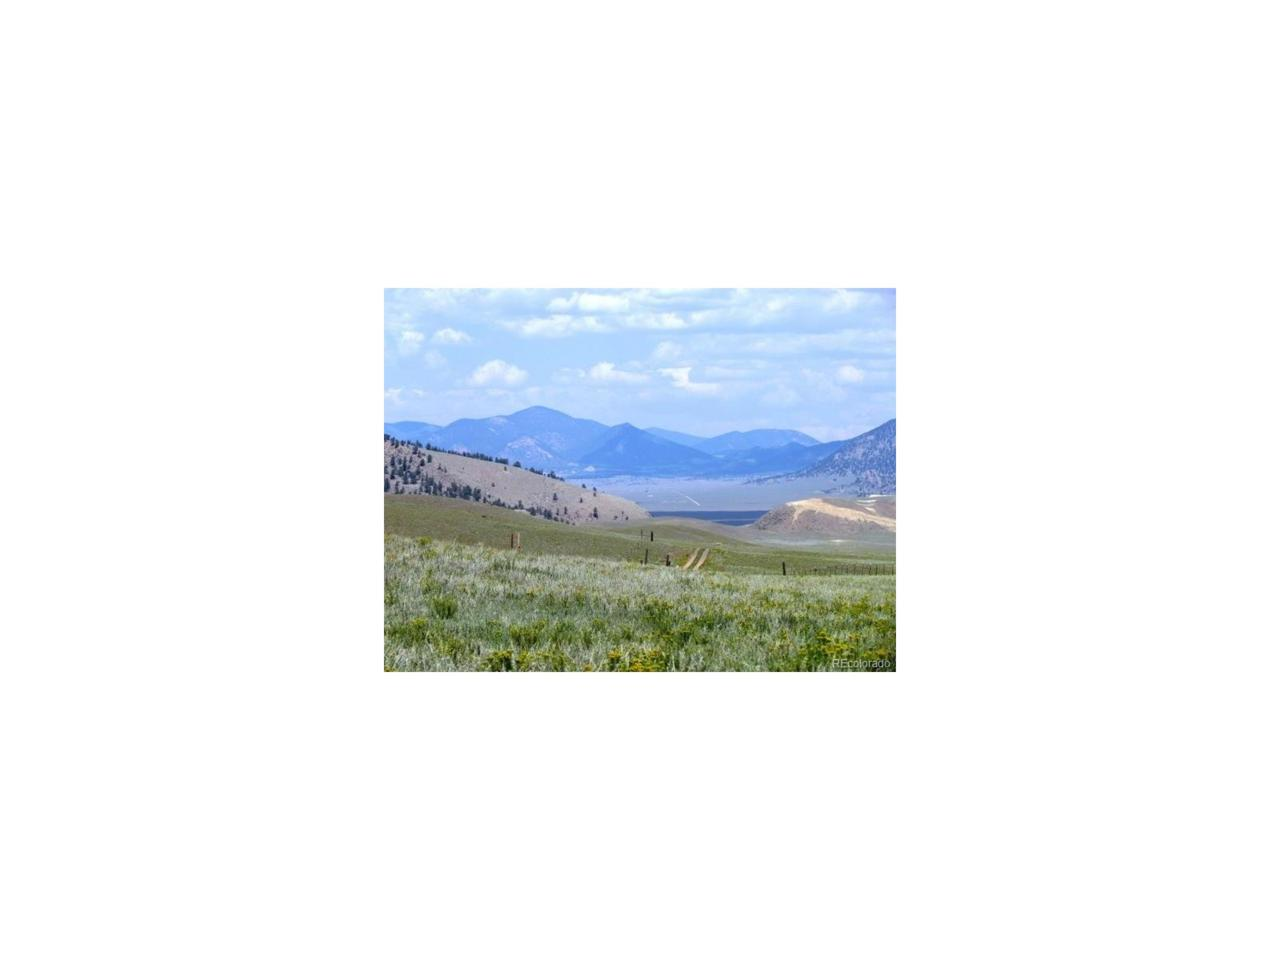 0000 Chickasaw Road, Hartsel, CO 80449 (MLS #9293450) :: 8z Real Estate